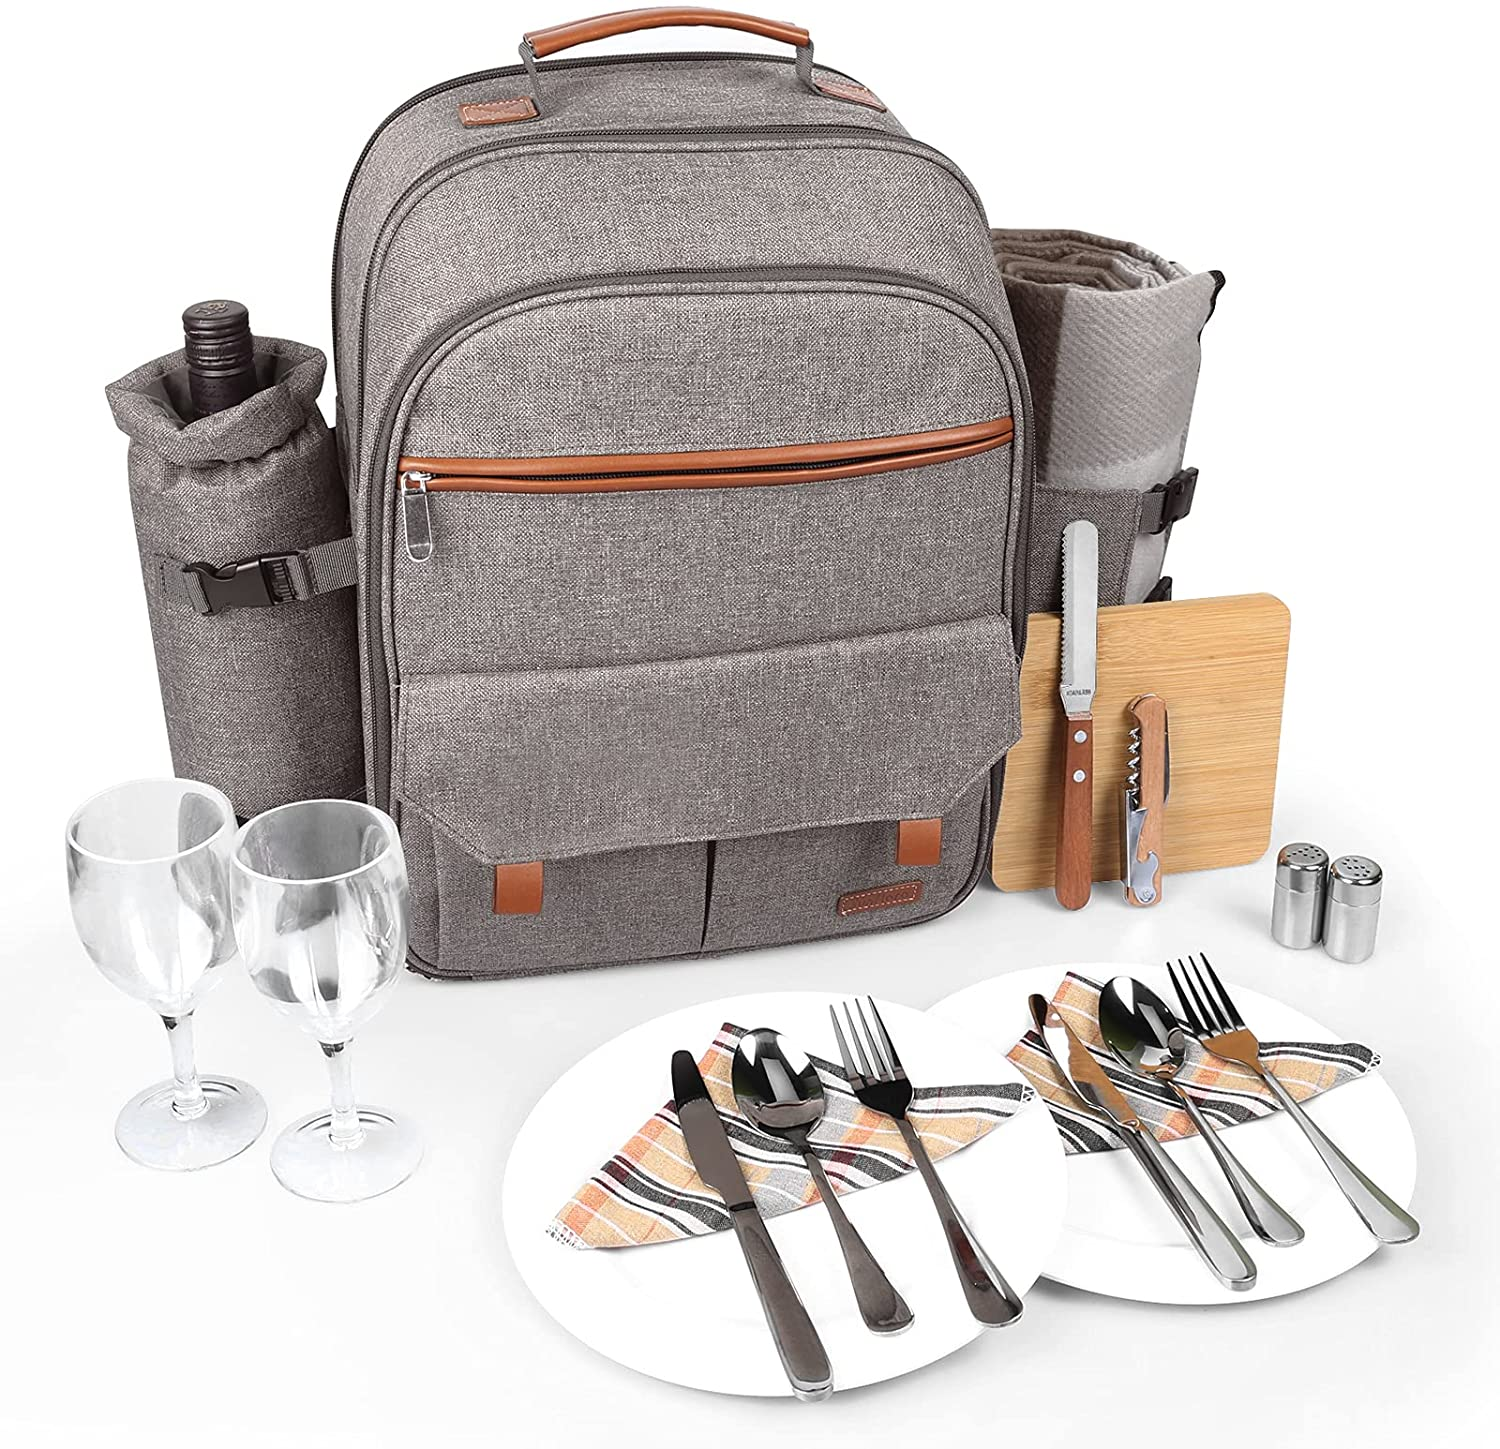 Sunflora Insulated Picnic Backpack for 2 Person Bag with Cooler Compartment, Blanket and Stainless Steel Cutlery Set for Couple, Lovers and Friends (Brush Beige) : Patio, Lawn & Garden